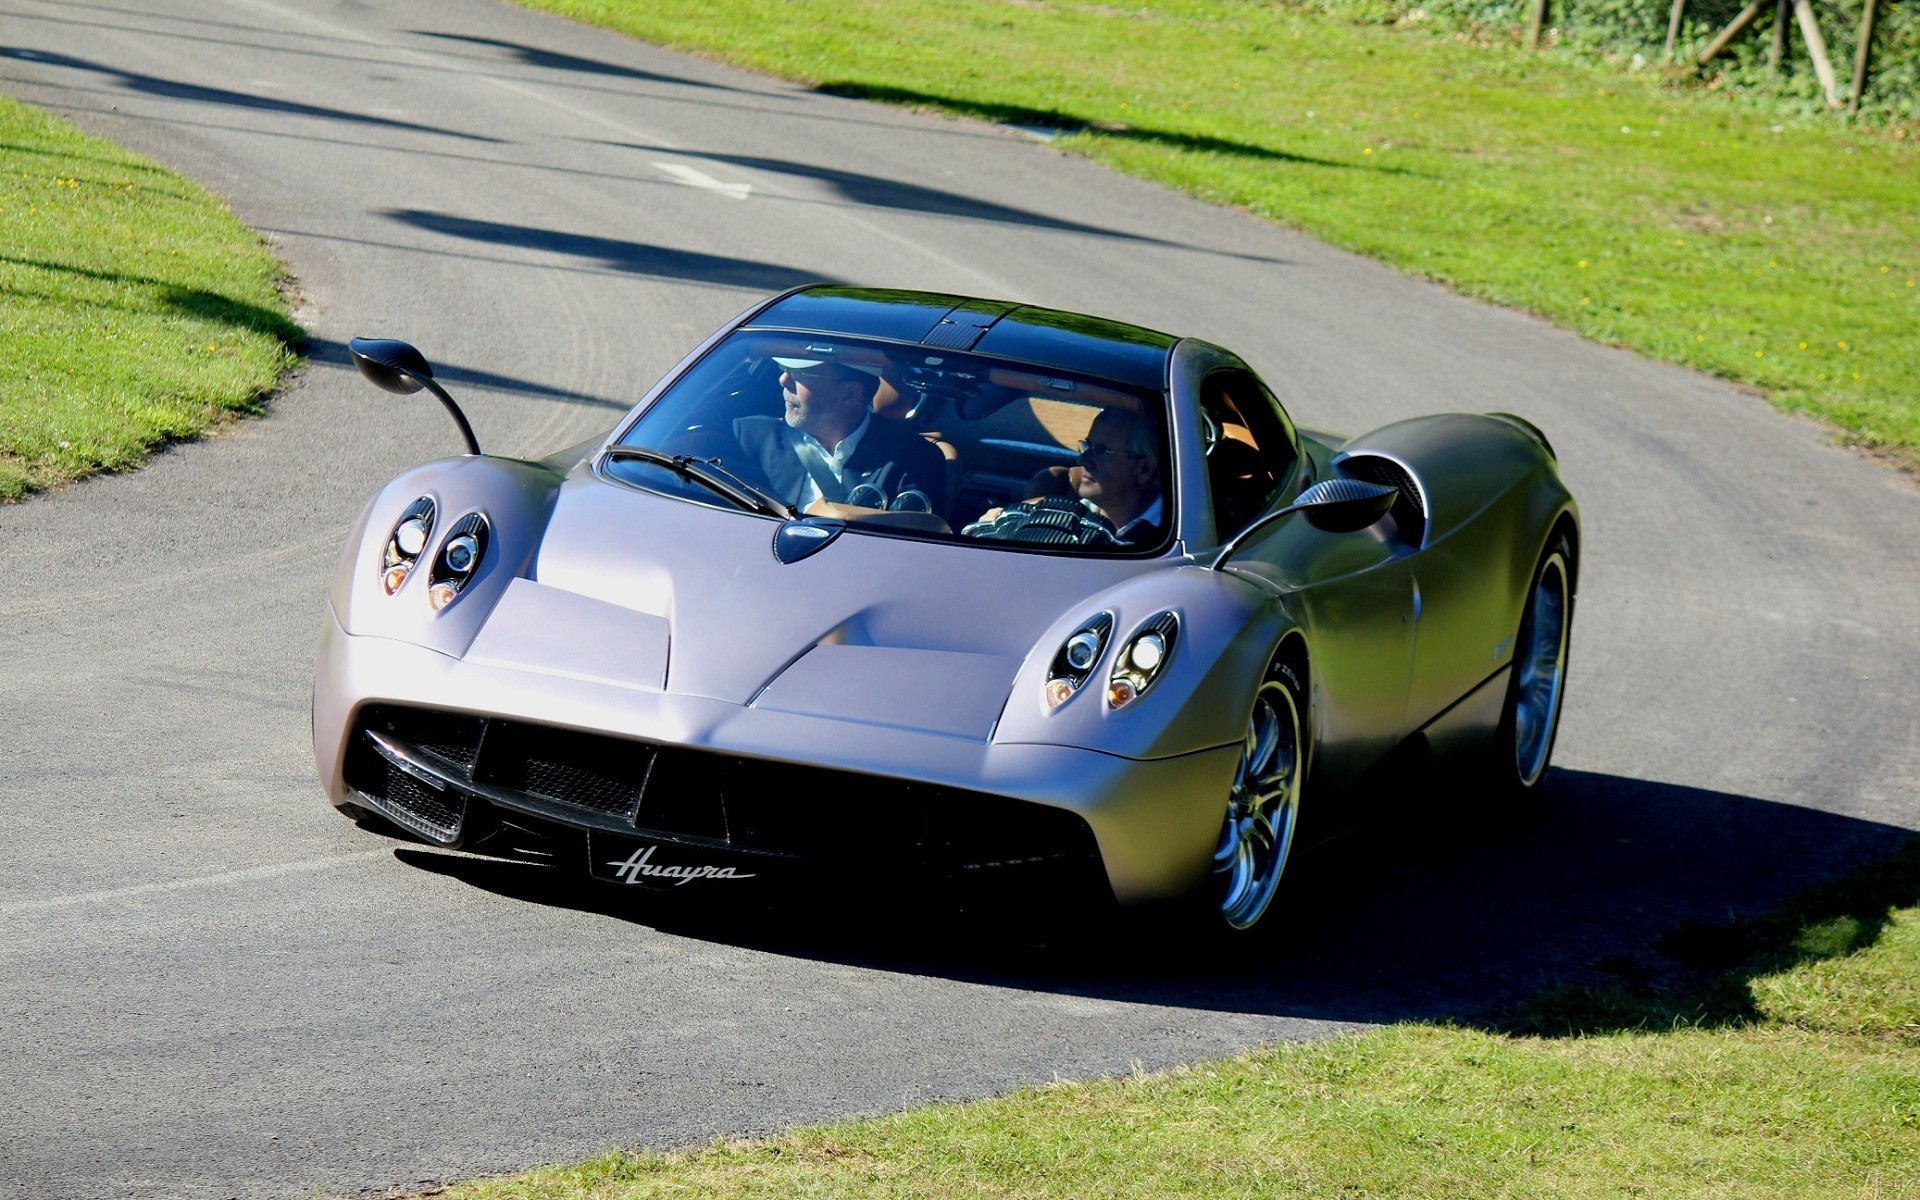 Cars pagani huayra wallpaper | AllWallpaper.in #13459 | PC | en